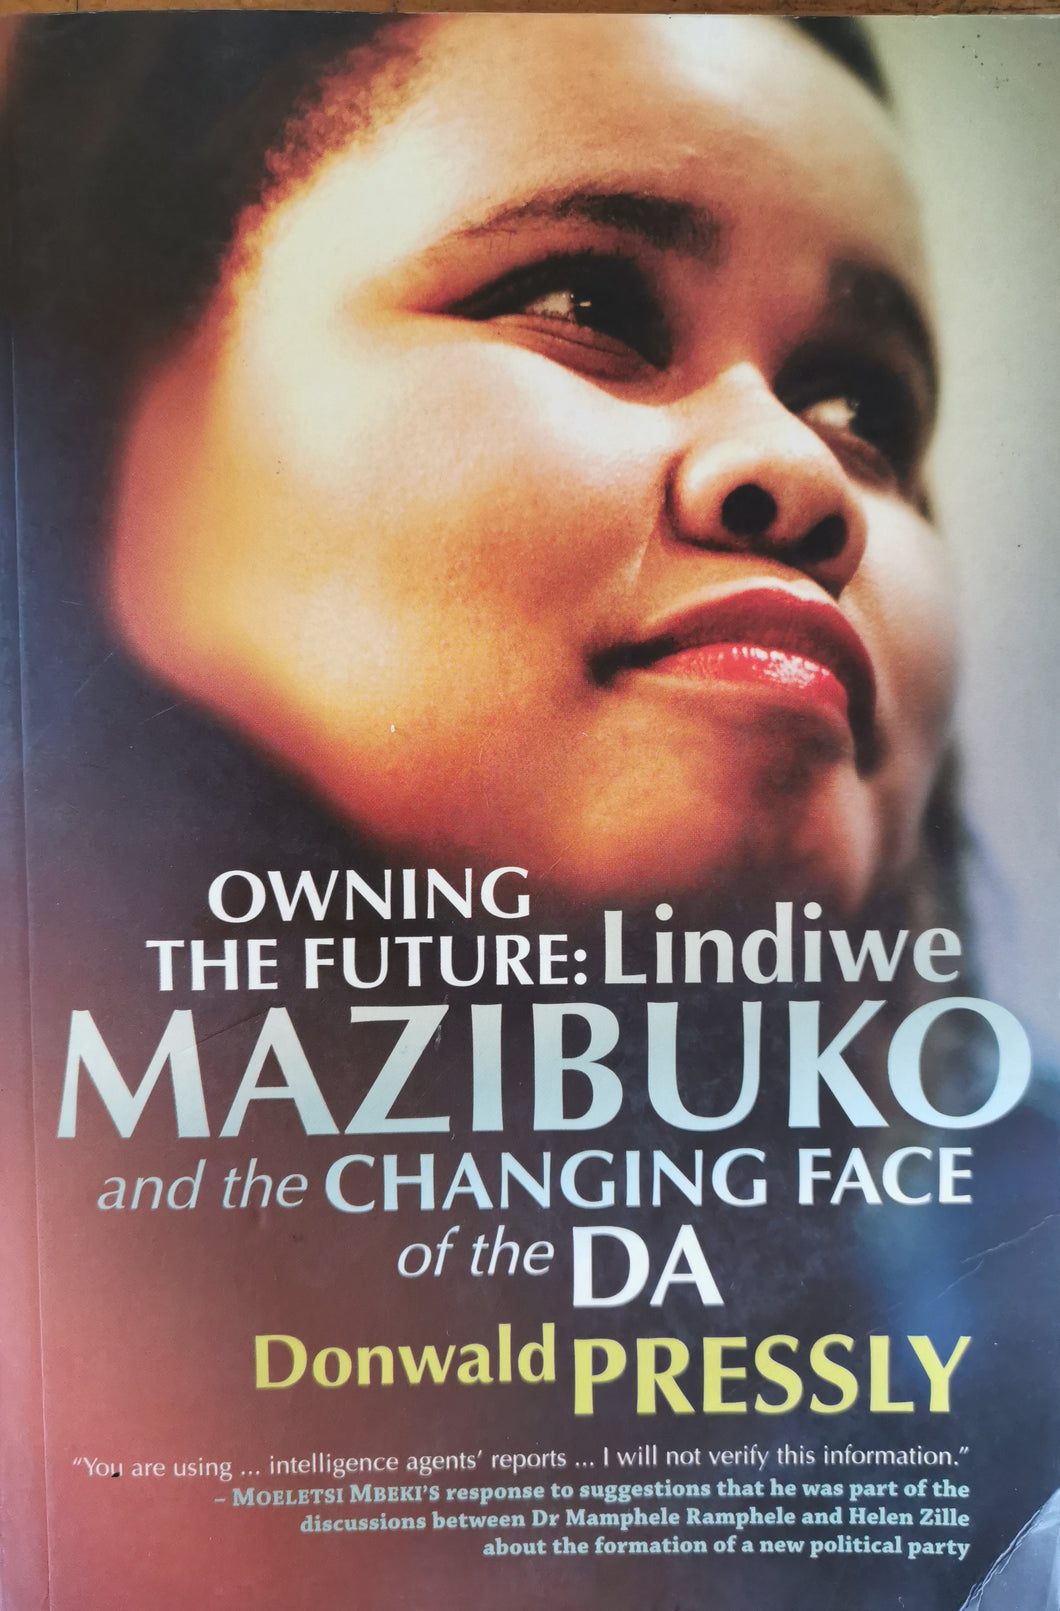 Owning the Future: Lindiwe Mazibuko and the Changing Face of the DA - Donwald Pressley